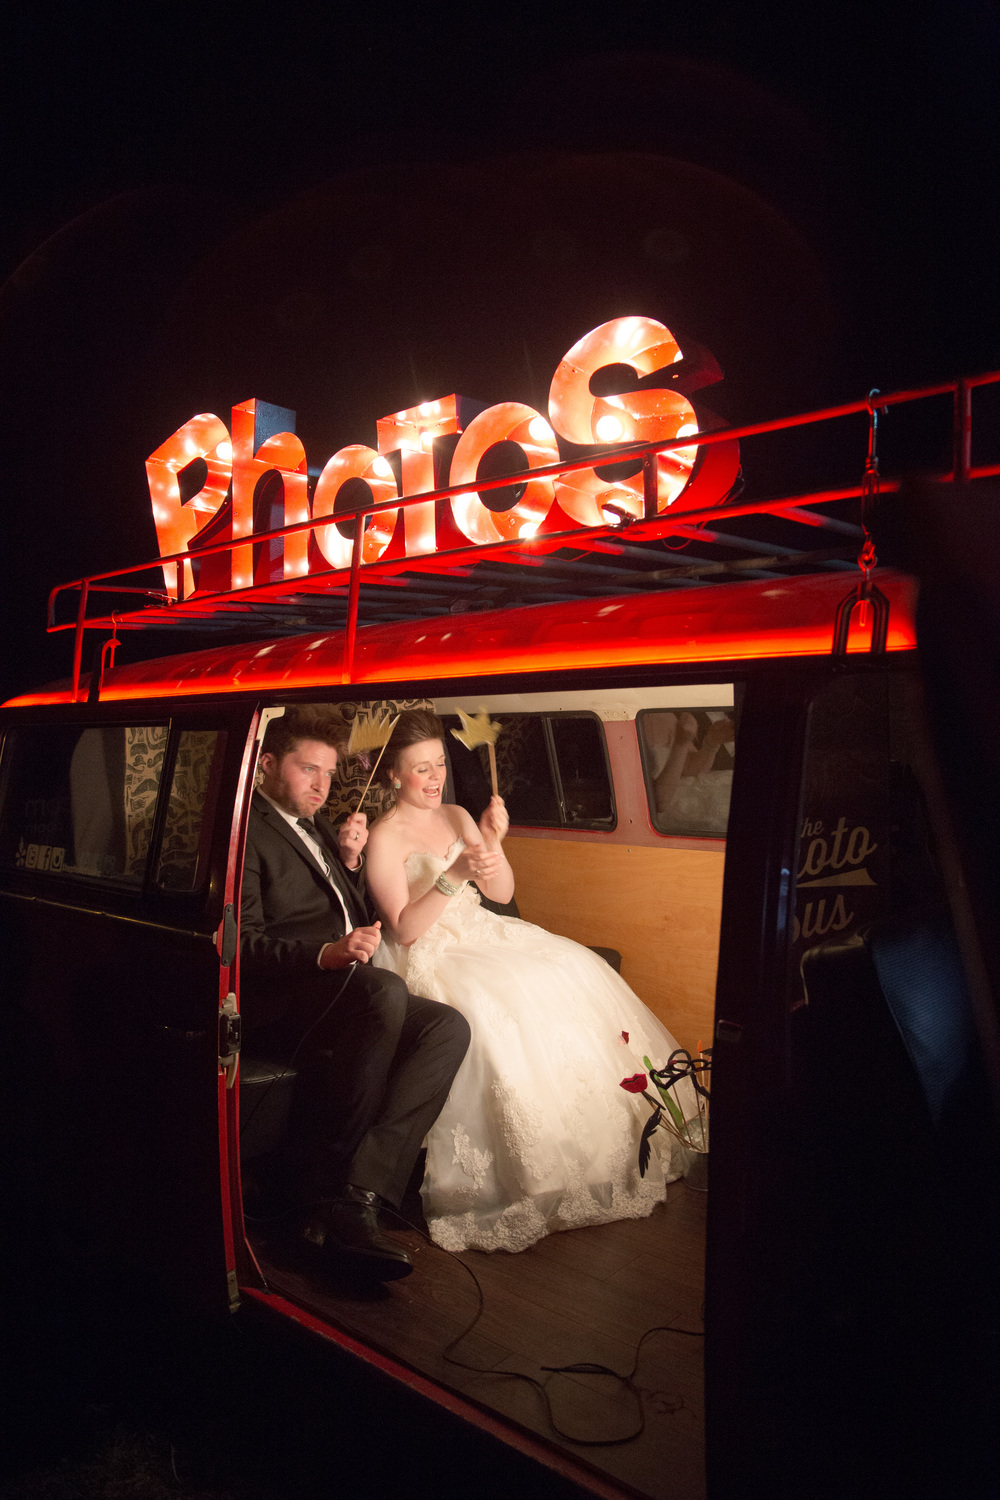 St-Louis-Wedding-Photobooth-The-Photo-Bus